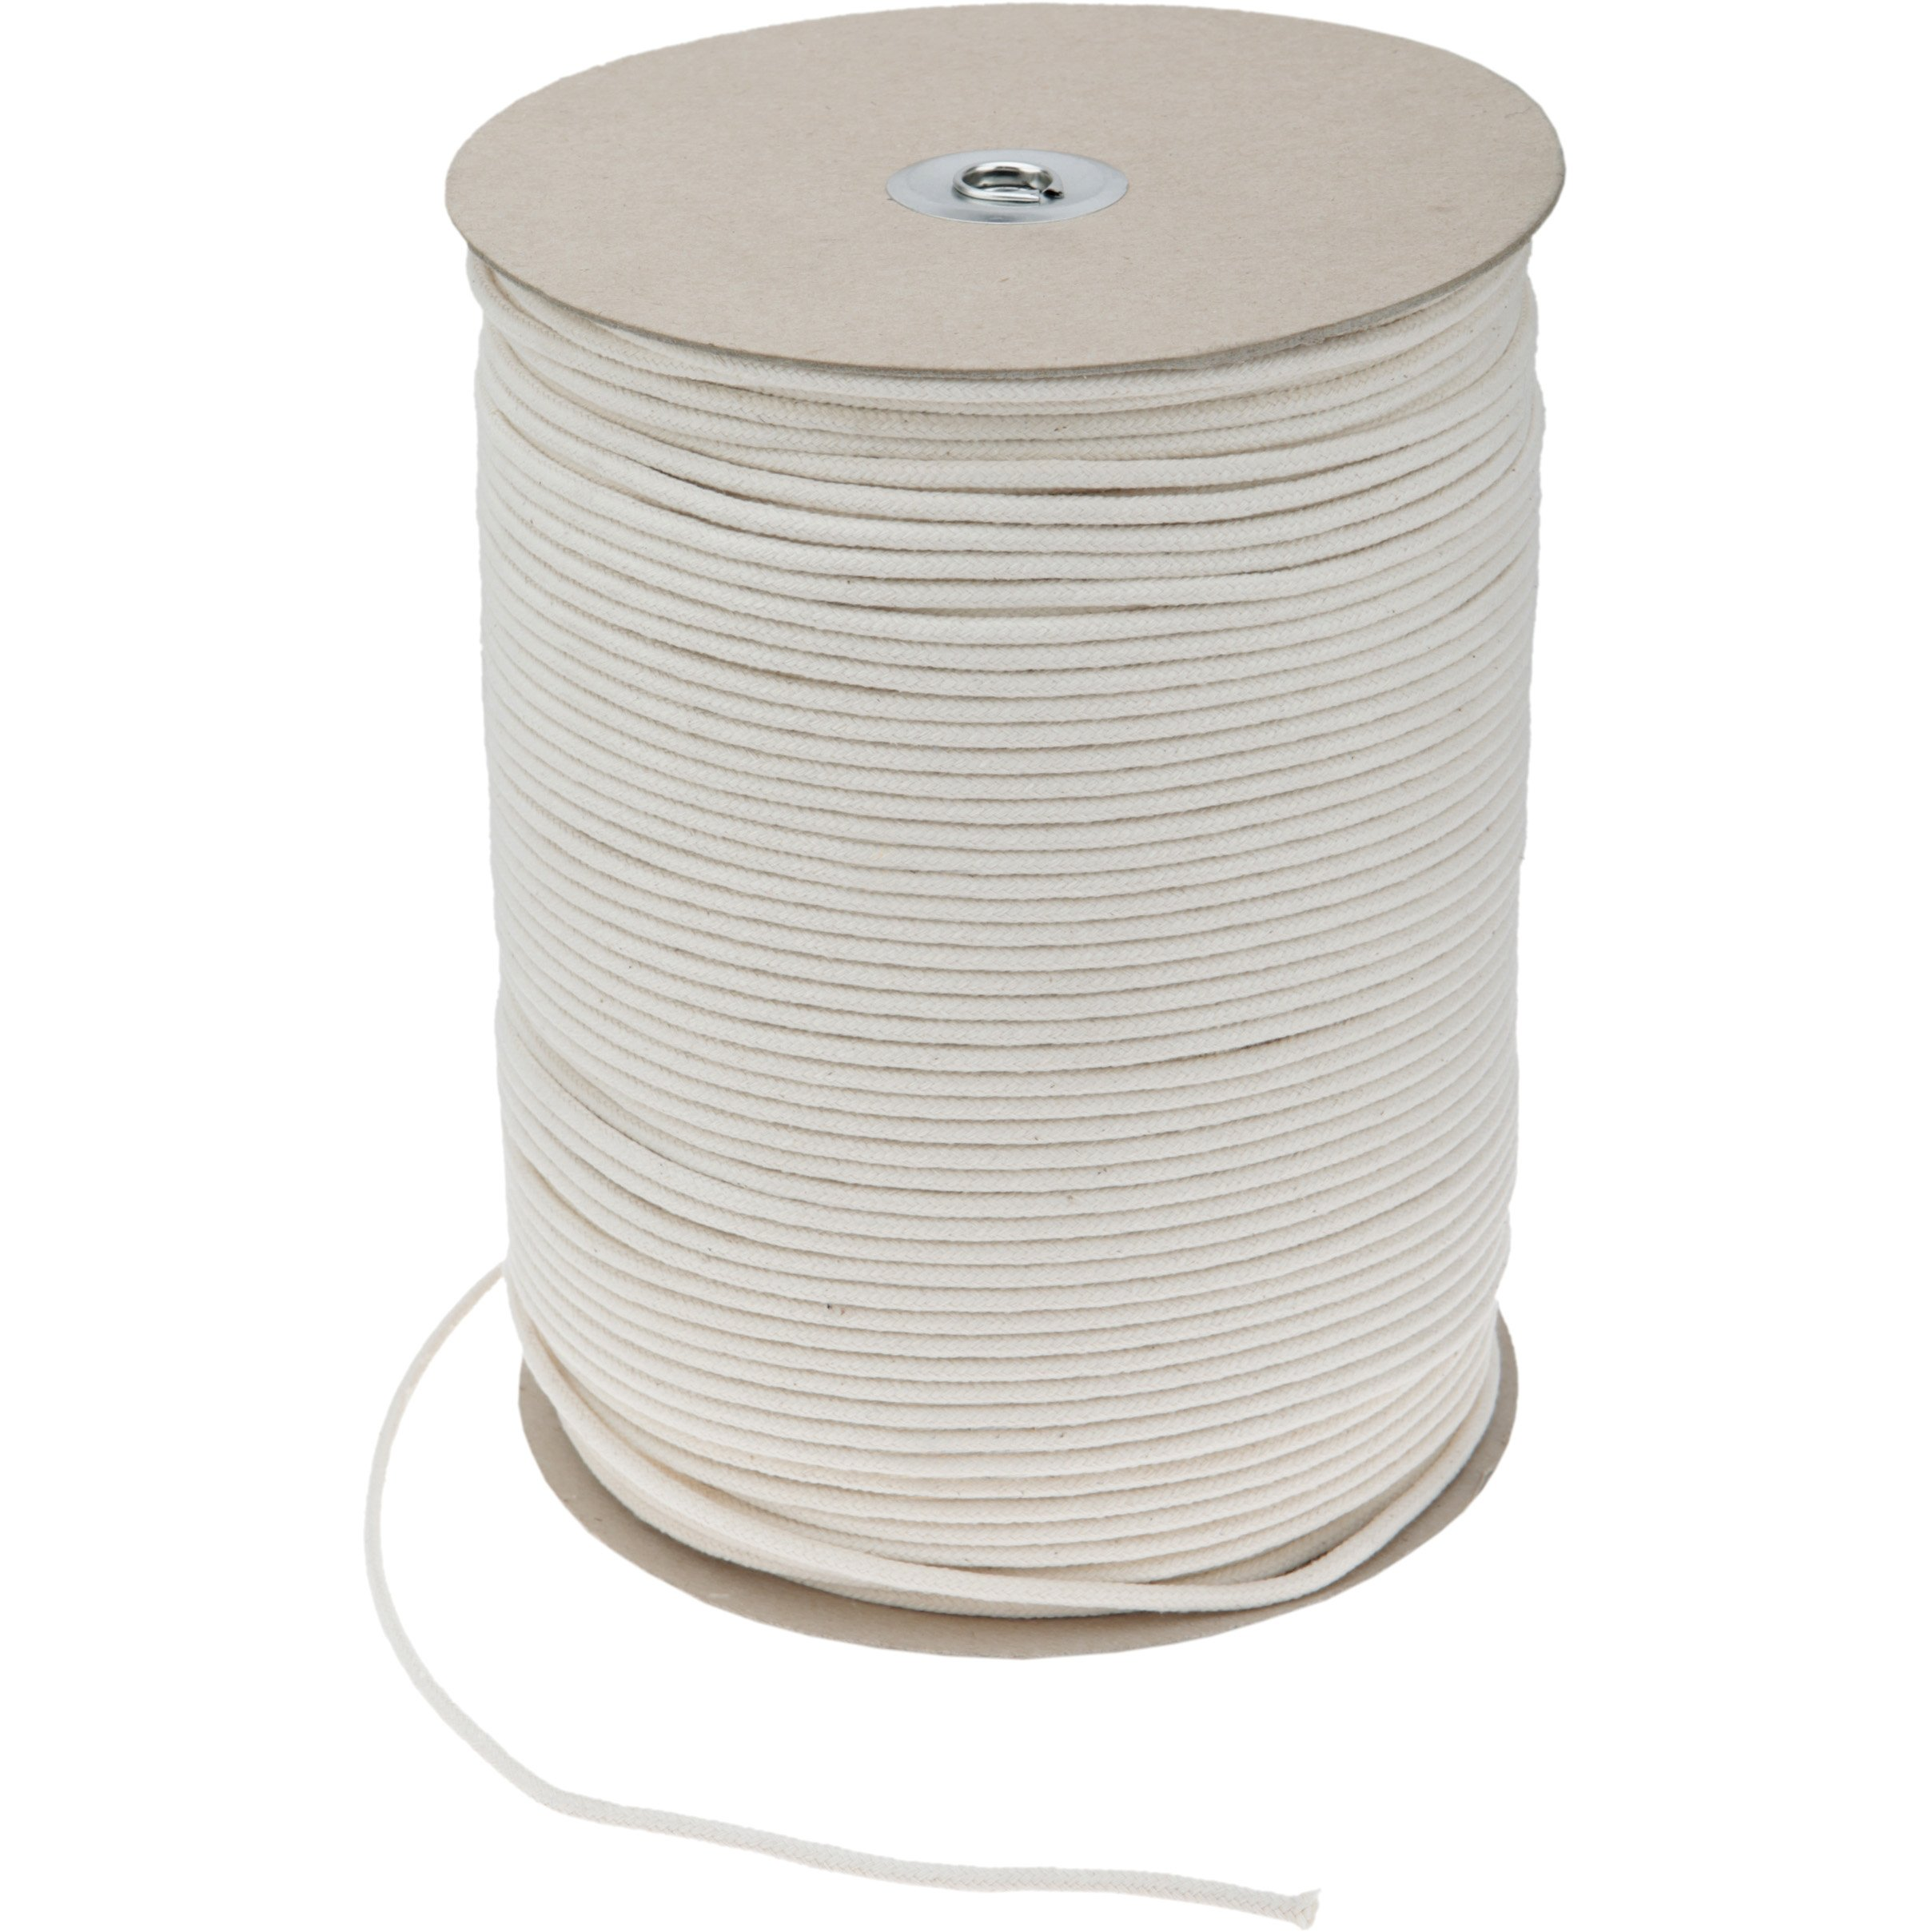 Cotton pipingcord Woven